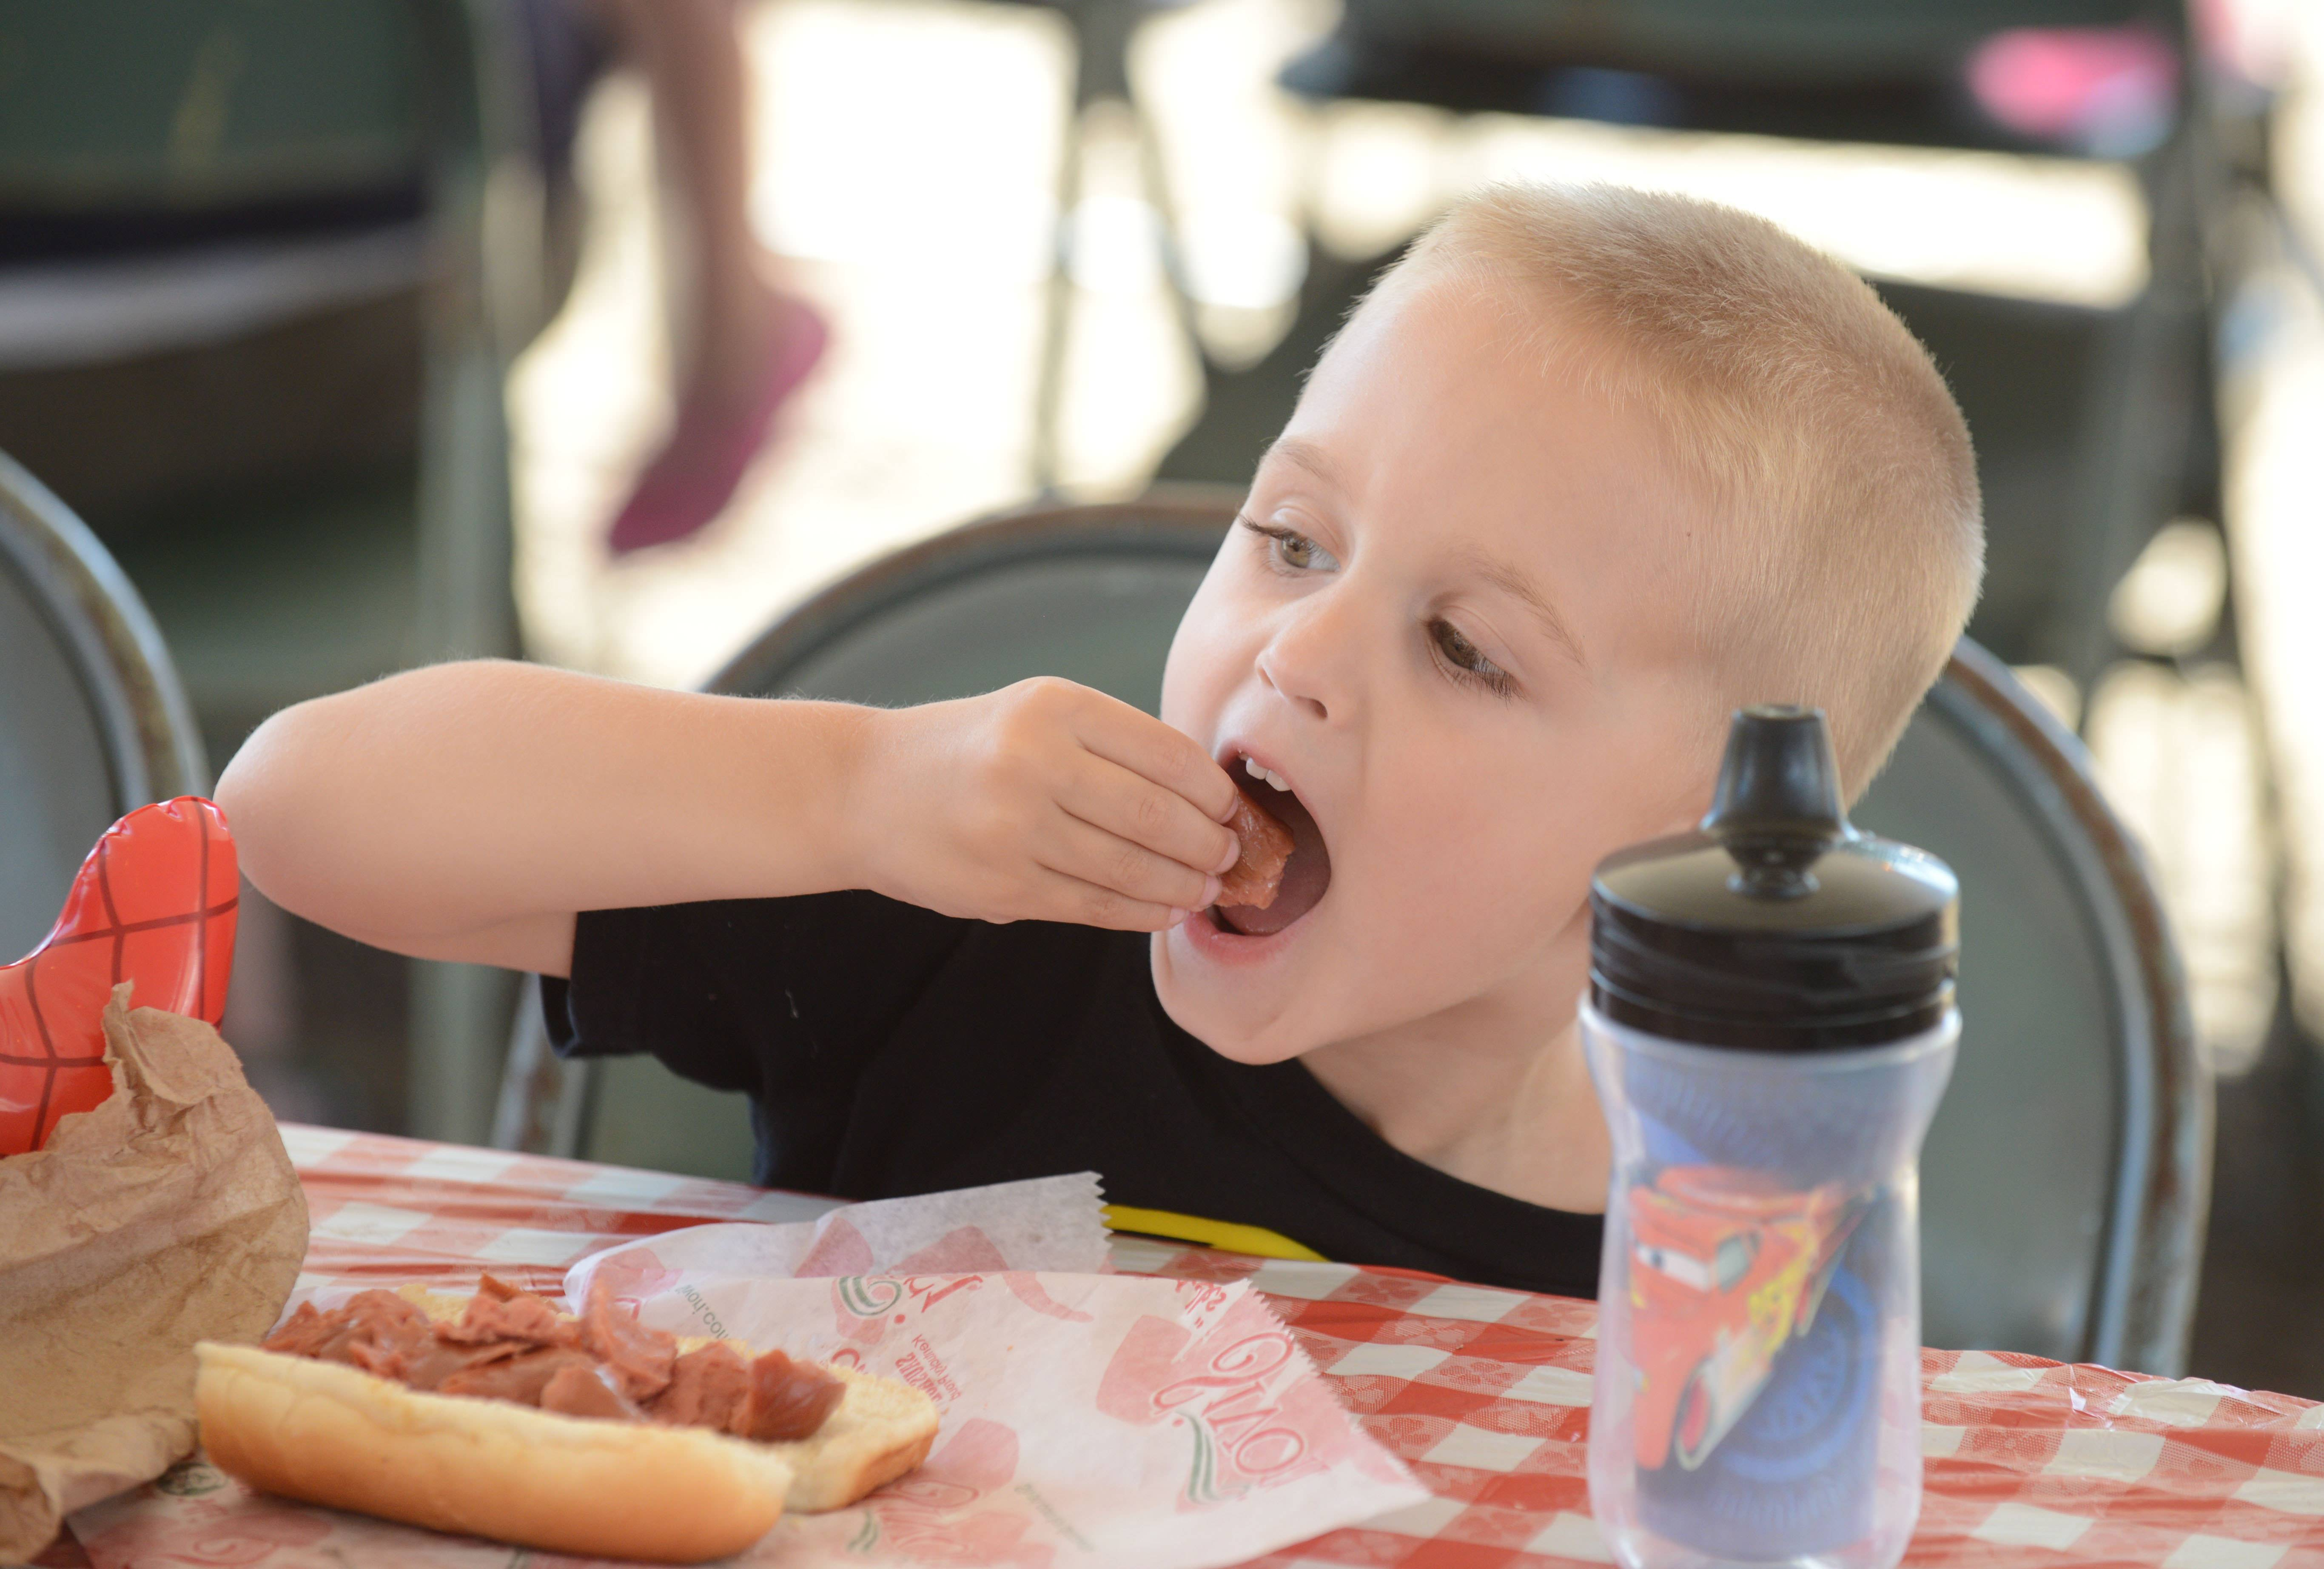 Paul Michna/pmichna@dailyherald.com Quinn Freyer, 3, of Mokena enjoys a hotdog at the second day of the 2014 DuPage County Fair in Wheaton. The fair runs through sunday and has something for everyone to enjoy.